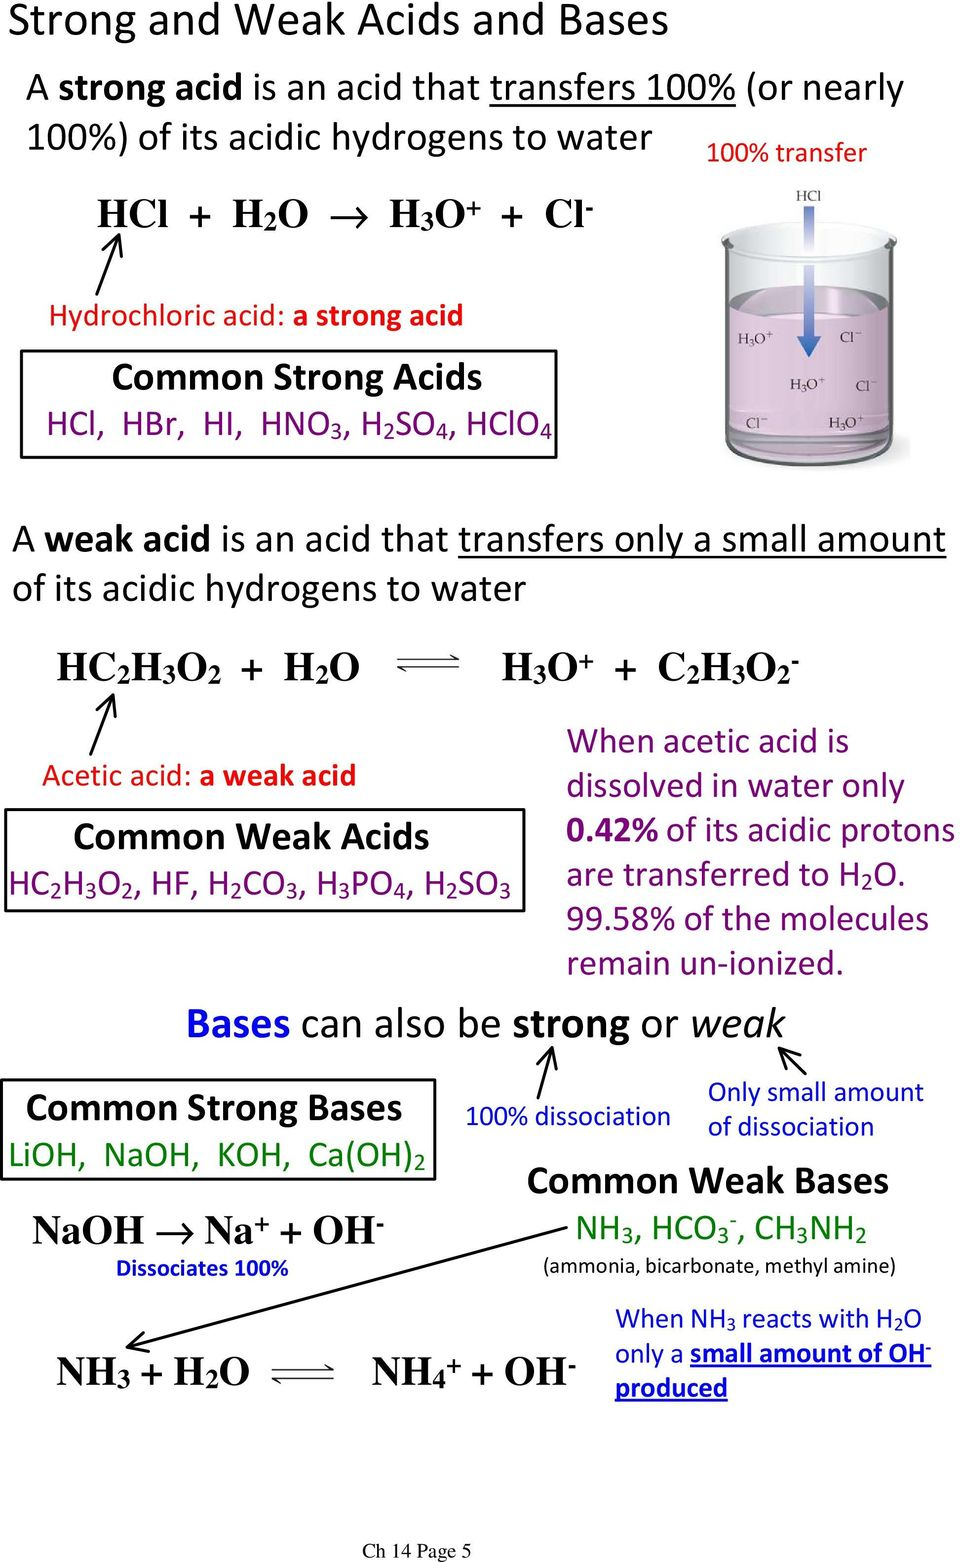 O 2 - Acetic acid: a weak acid Common Weak Acids HC 2 H 3 O 2, HF, H 2 CO 3, H 3 PO 4, H 2 SO 3 When acetic acid is dissolved in water only 0.42%of its acidic protons are transferred to H 2 O. 99.